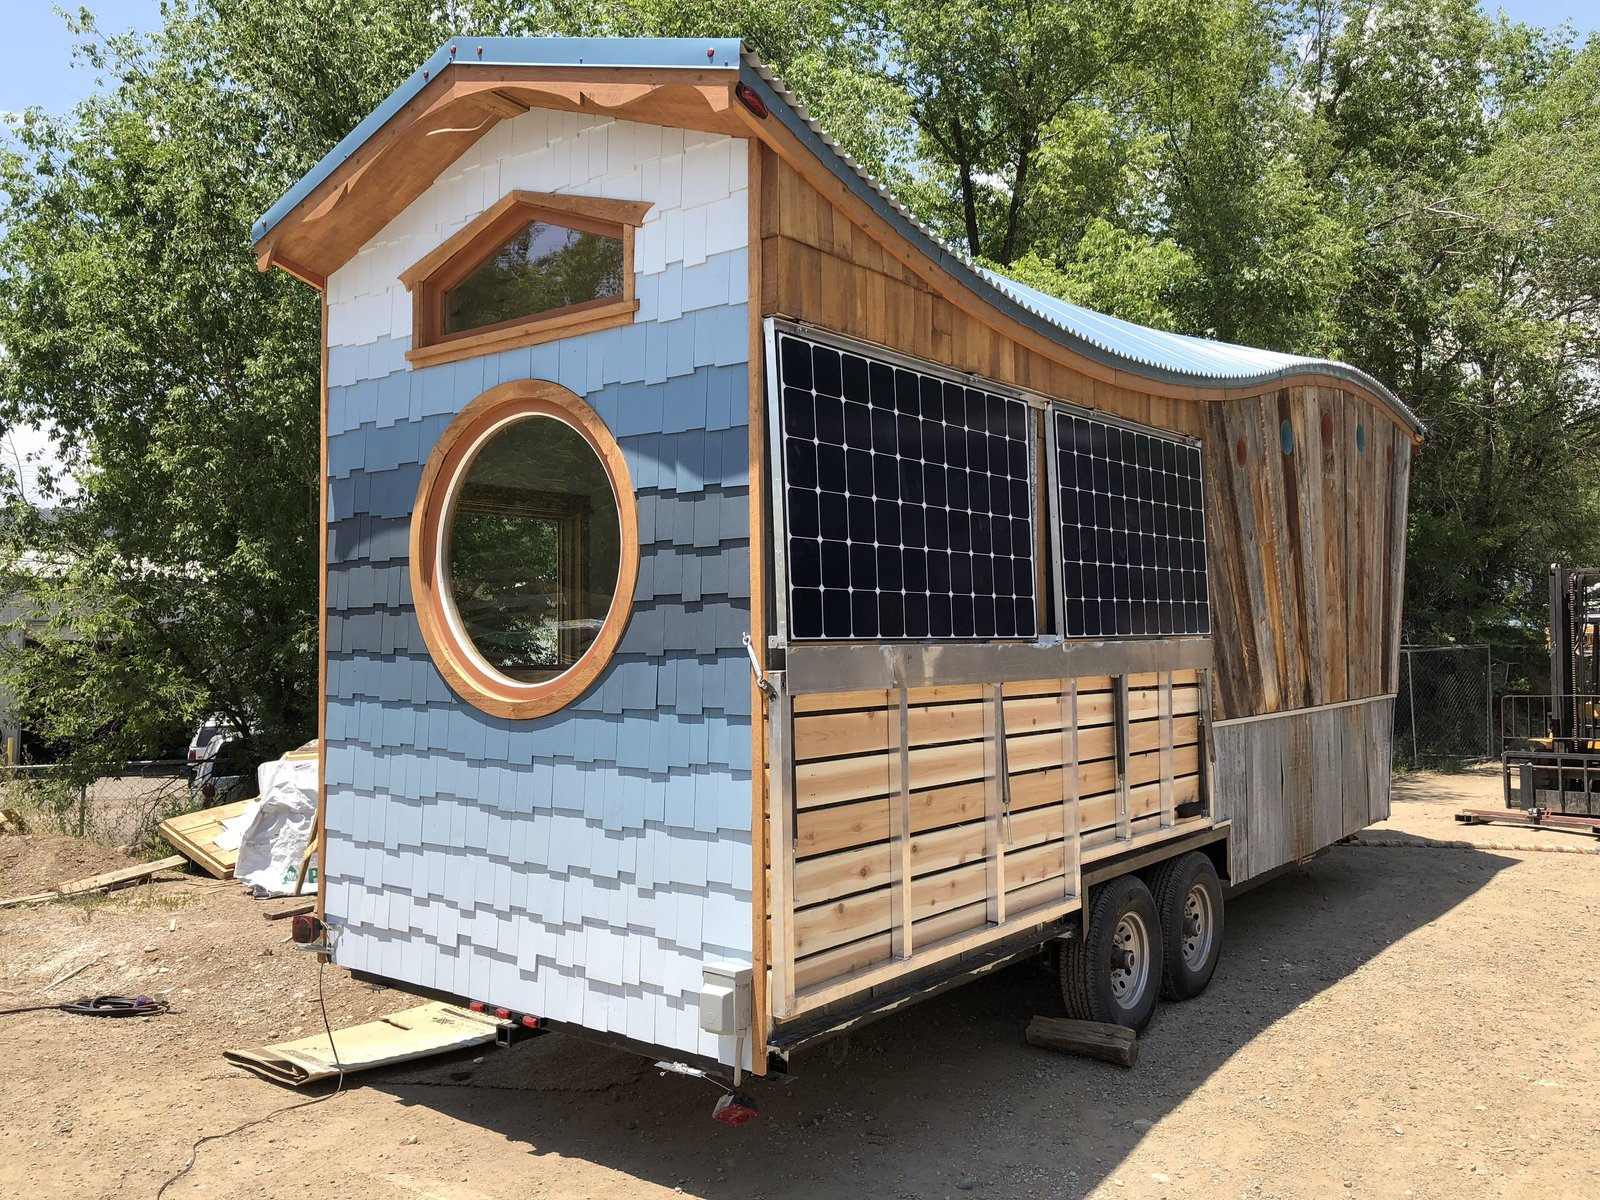 Exterior, Wood, Tiny Home, Metal, Metal, and Curved Exterior with porch folded in  Best Exterior Metal Wood Curved Photos from The San Juan Tiny House